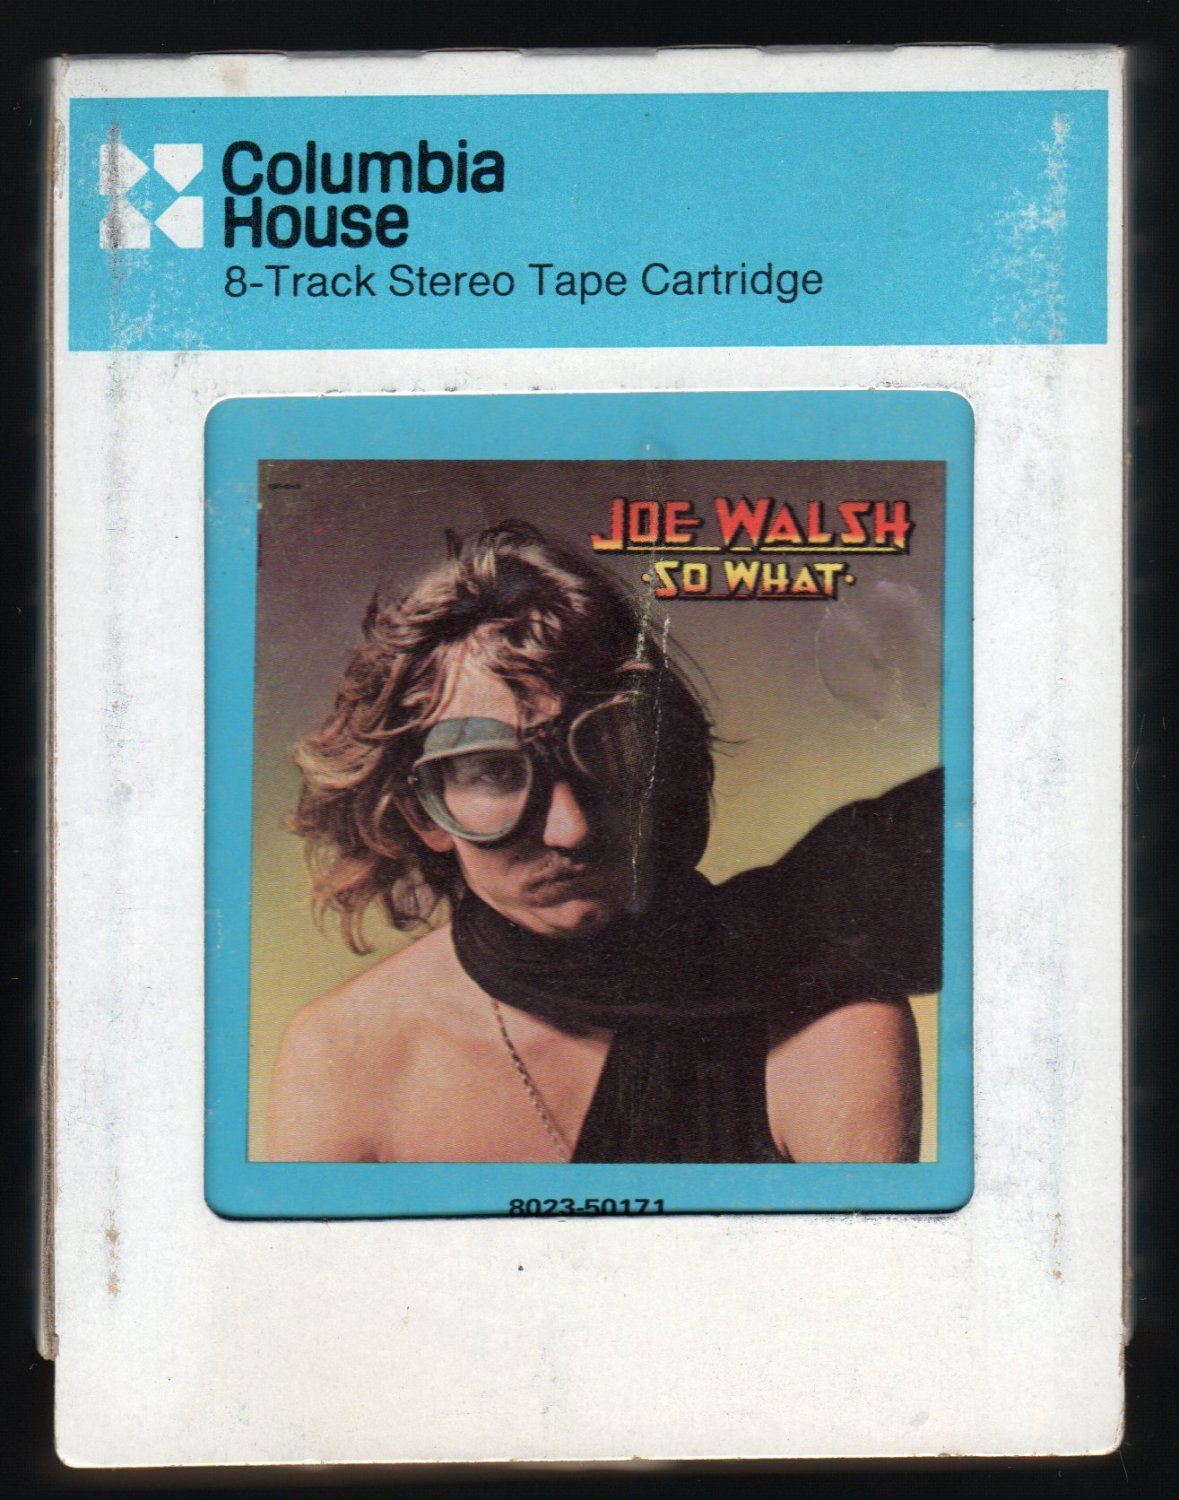 Joe Walsh - So What 1974 CRC ABC A49 8-TRACK TAPE